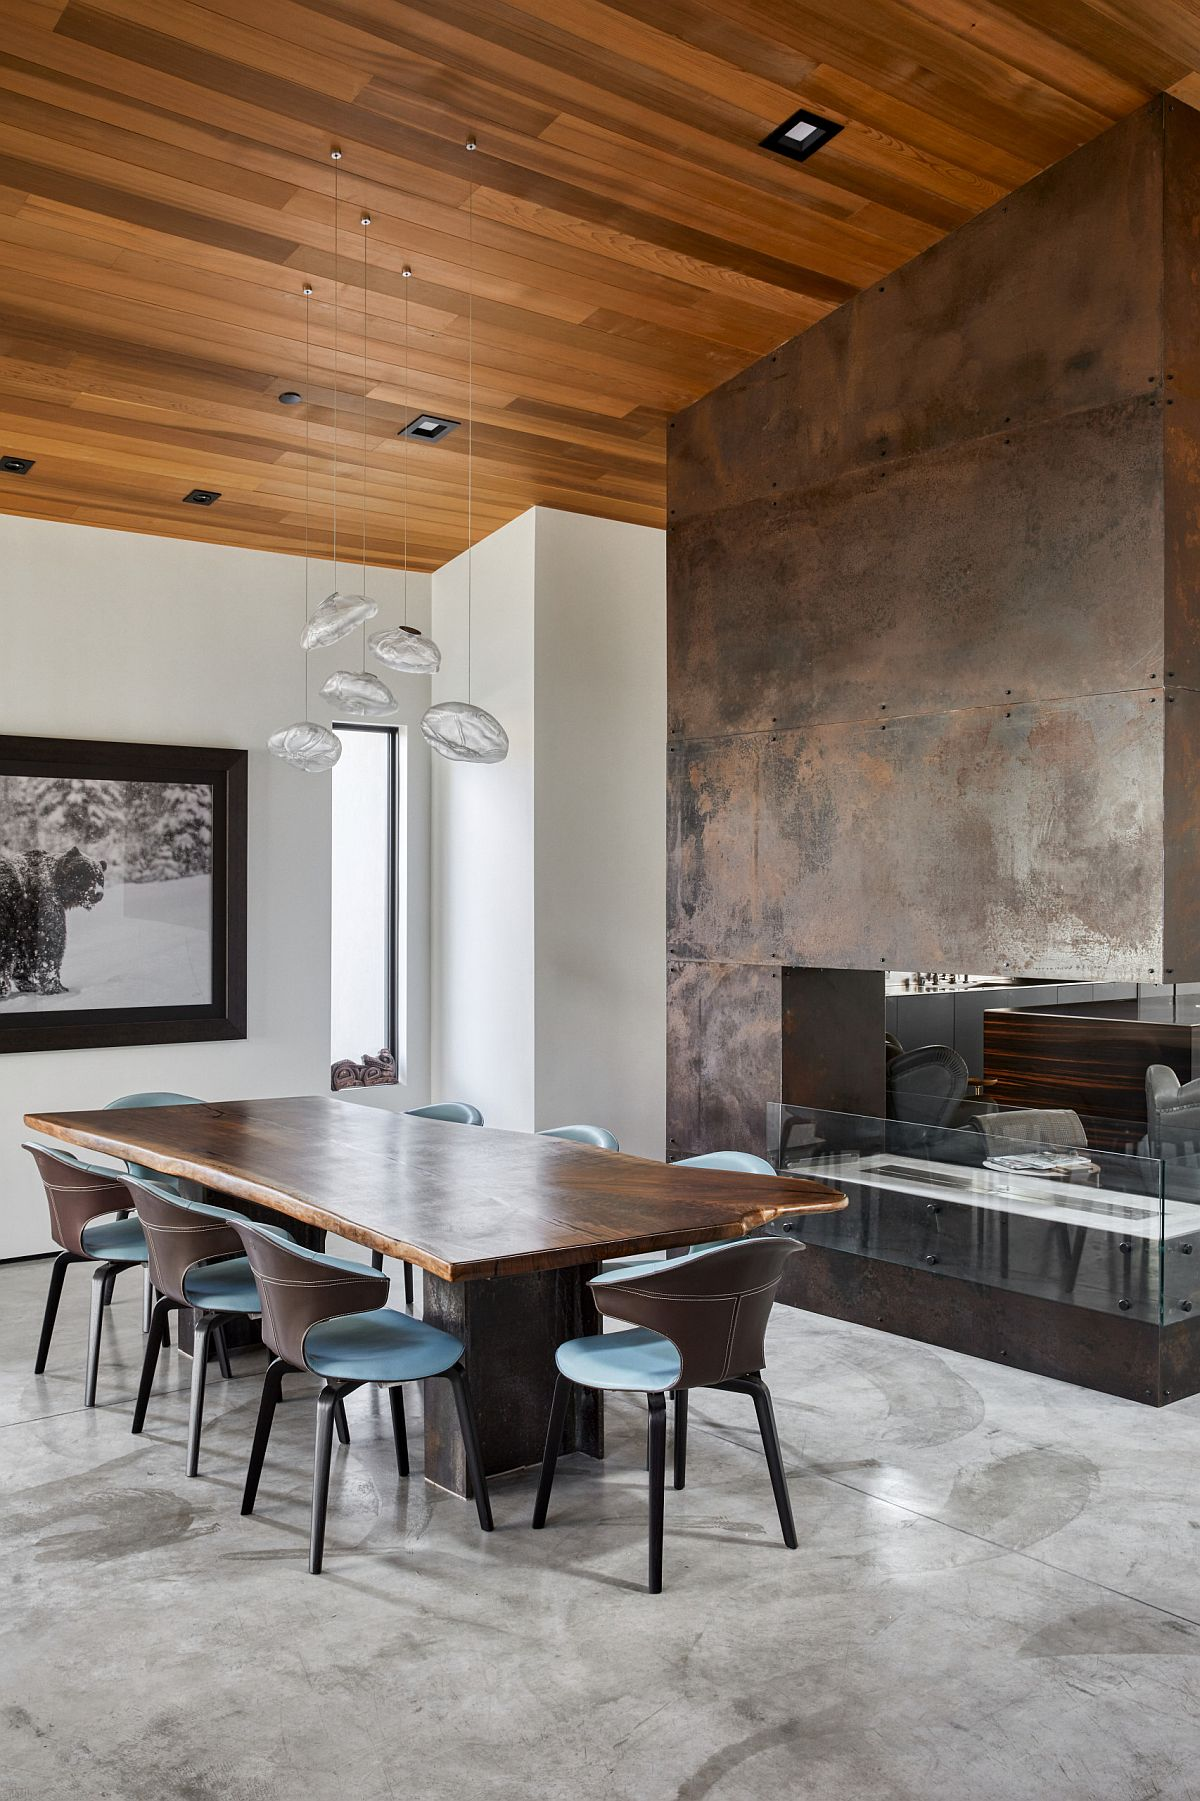 Exquisite dining room with double-sided fireplace that features a metallic wall